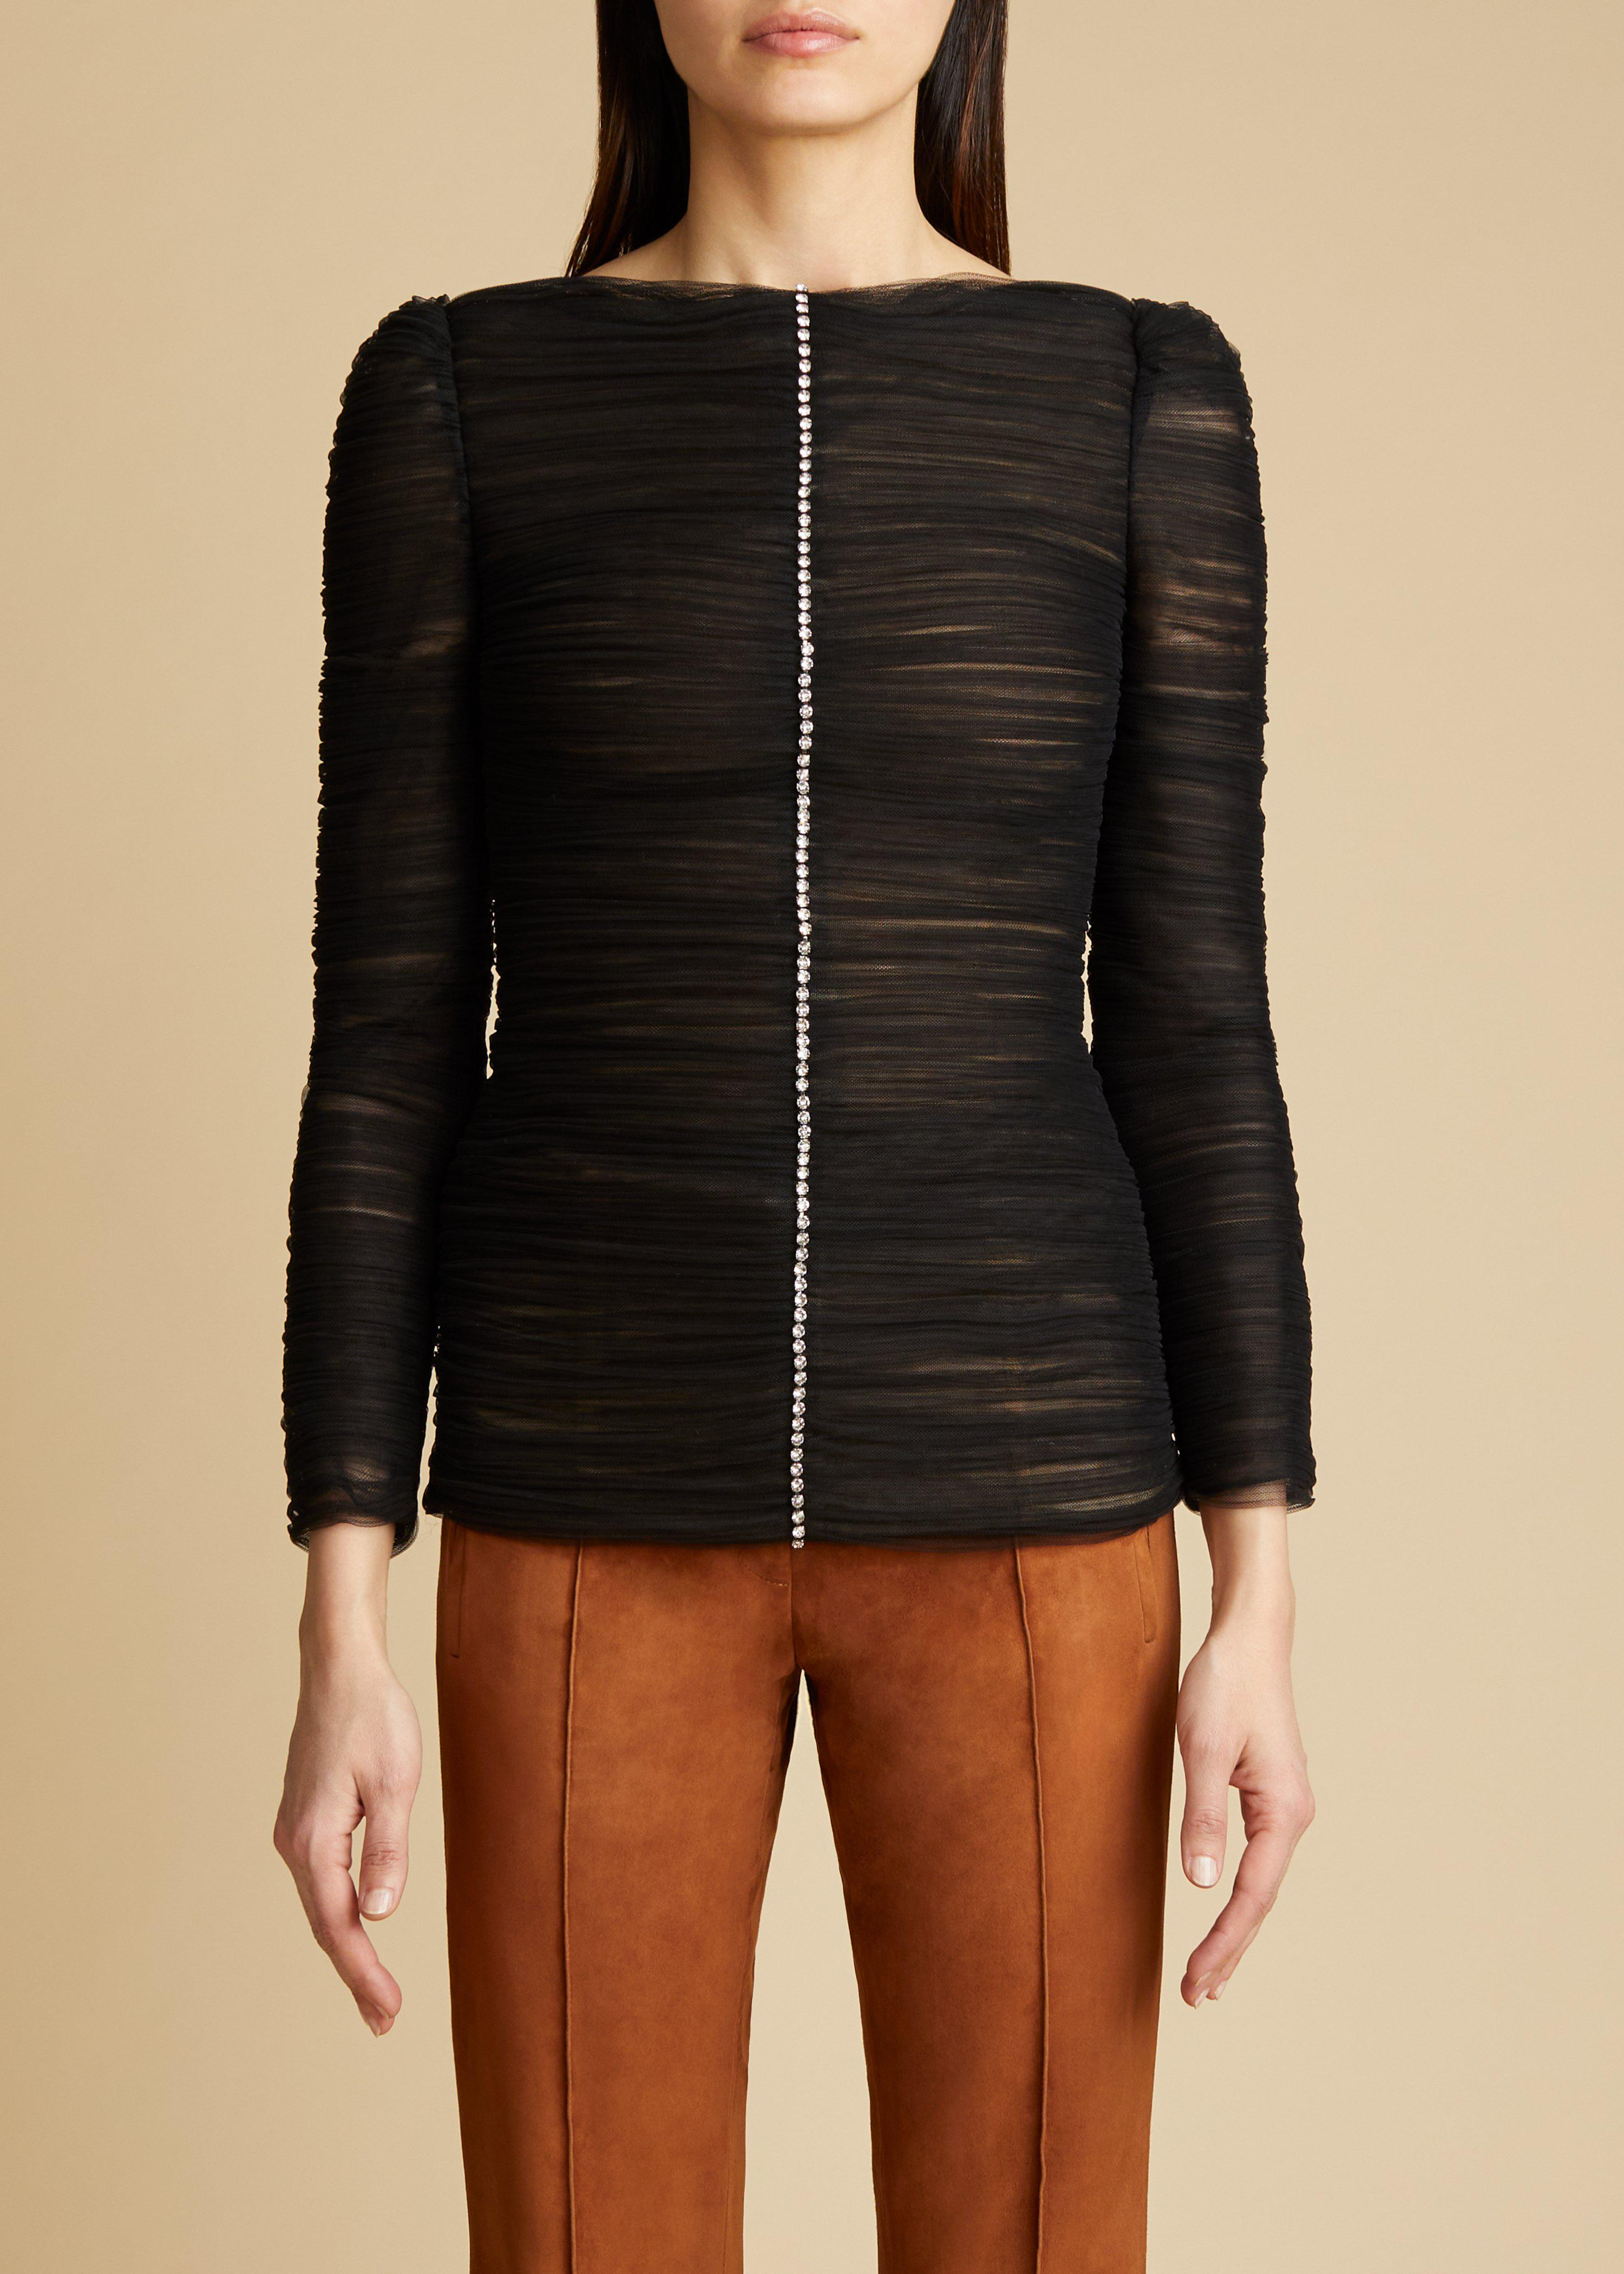 The Vienna Top in Black 0